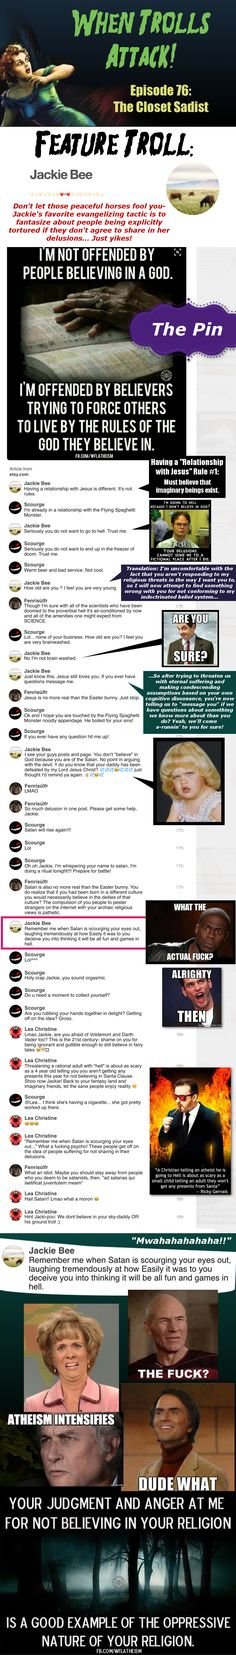 Holy shit Jackie, do we at least get a safe word? [CLICK to enlarge text] For blocking purposes of feature troll: https://www.pinterest.com/Pinteresting2C/